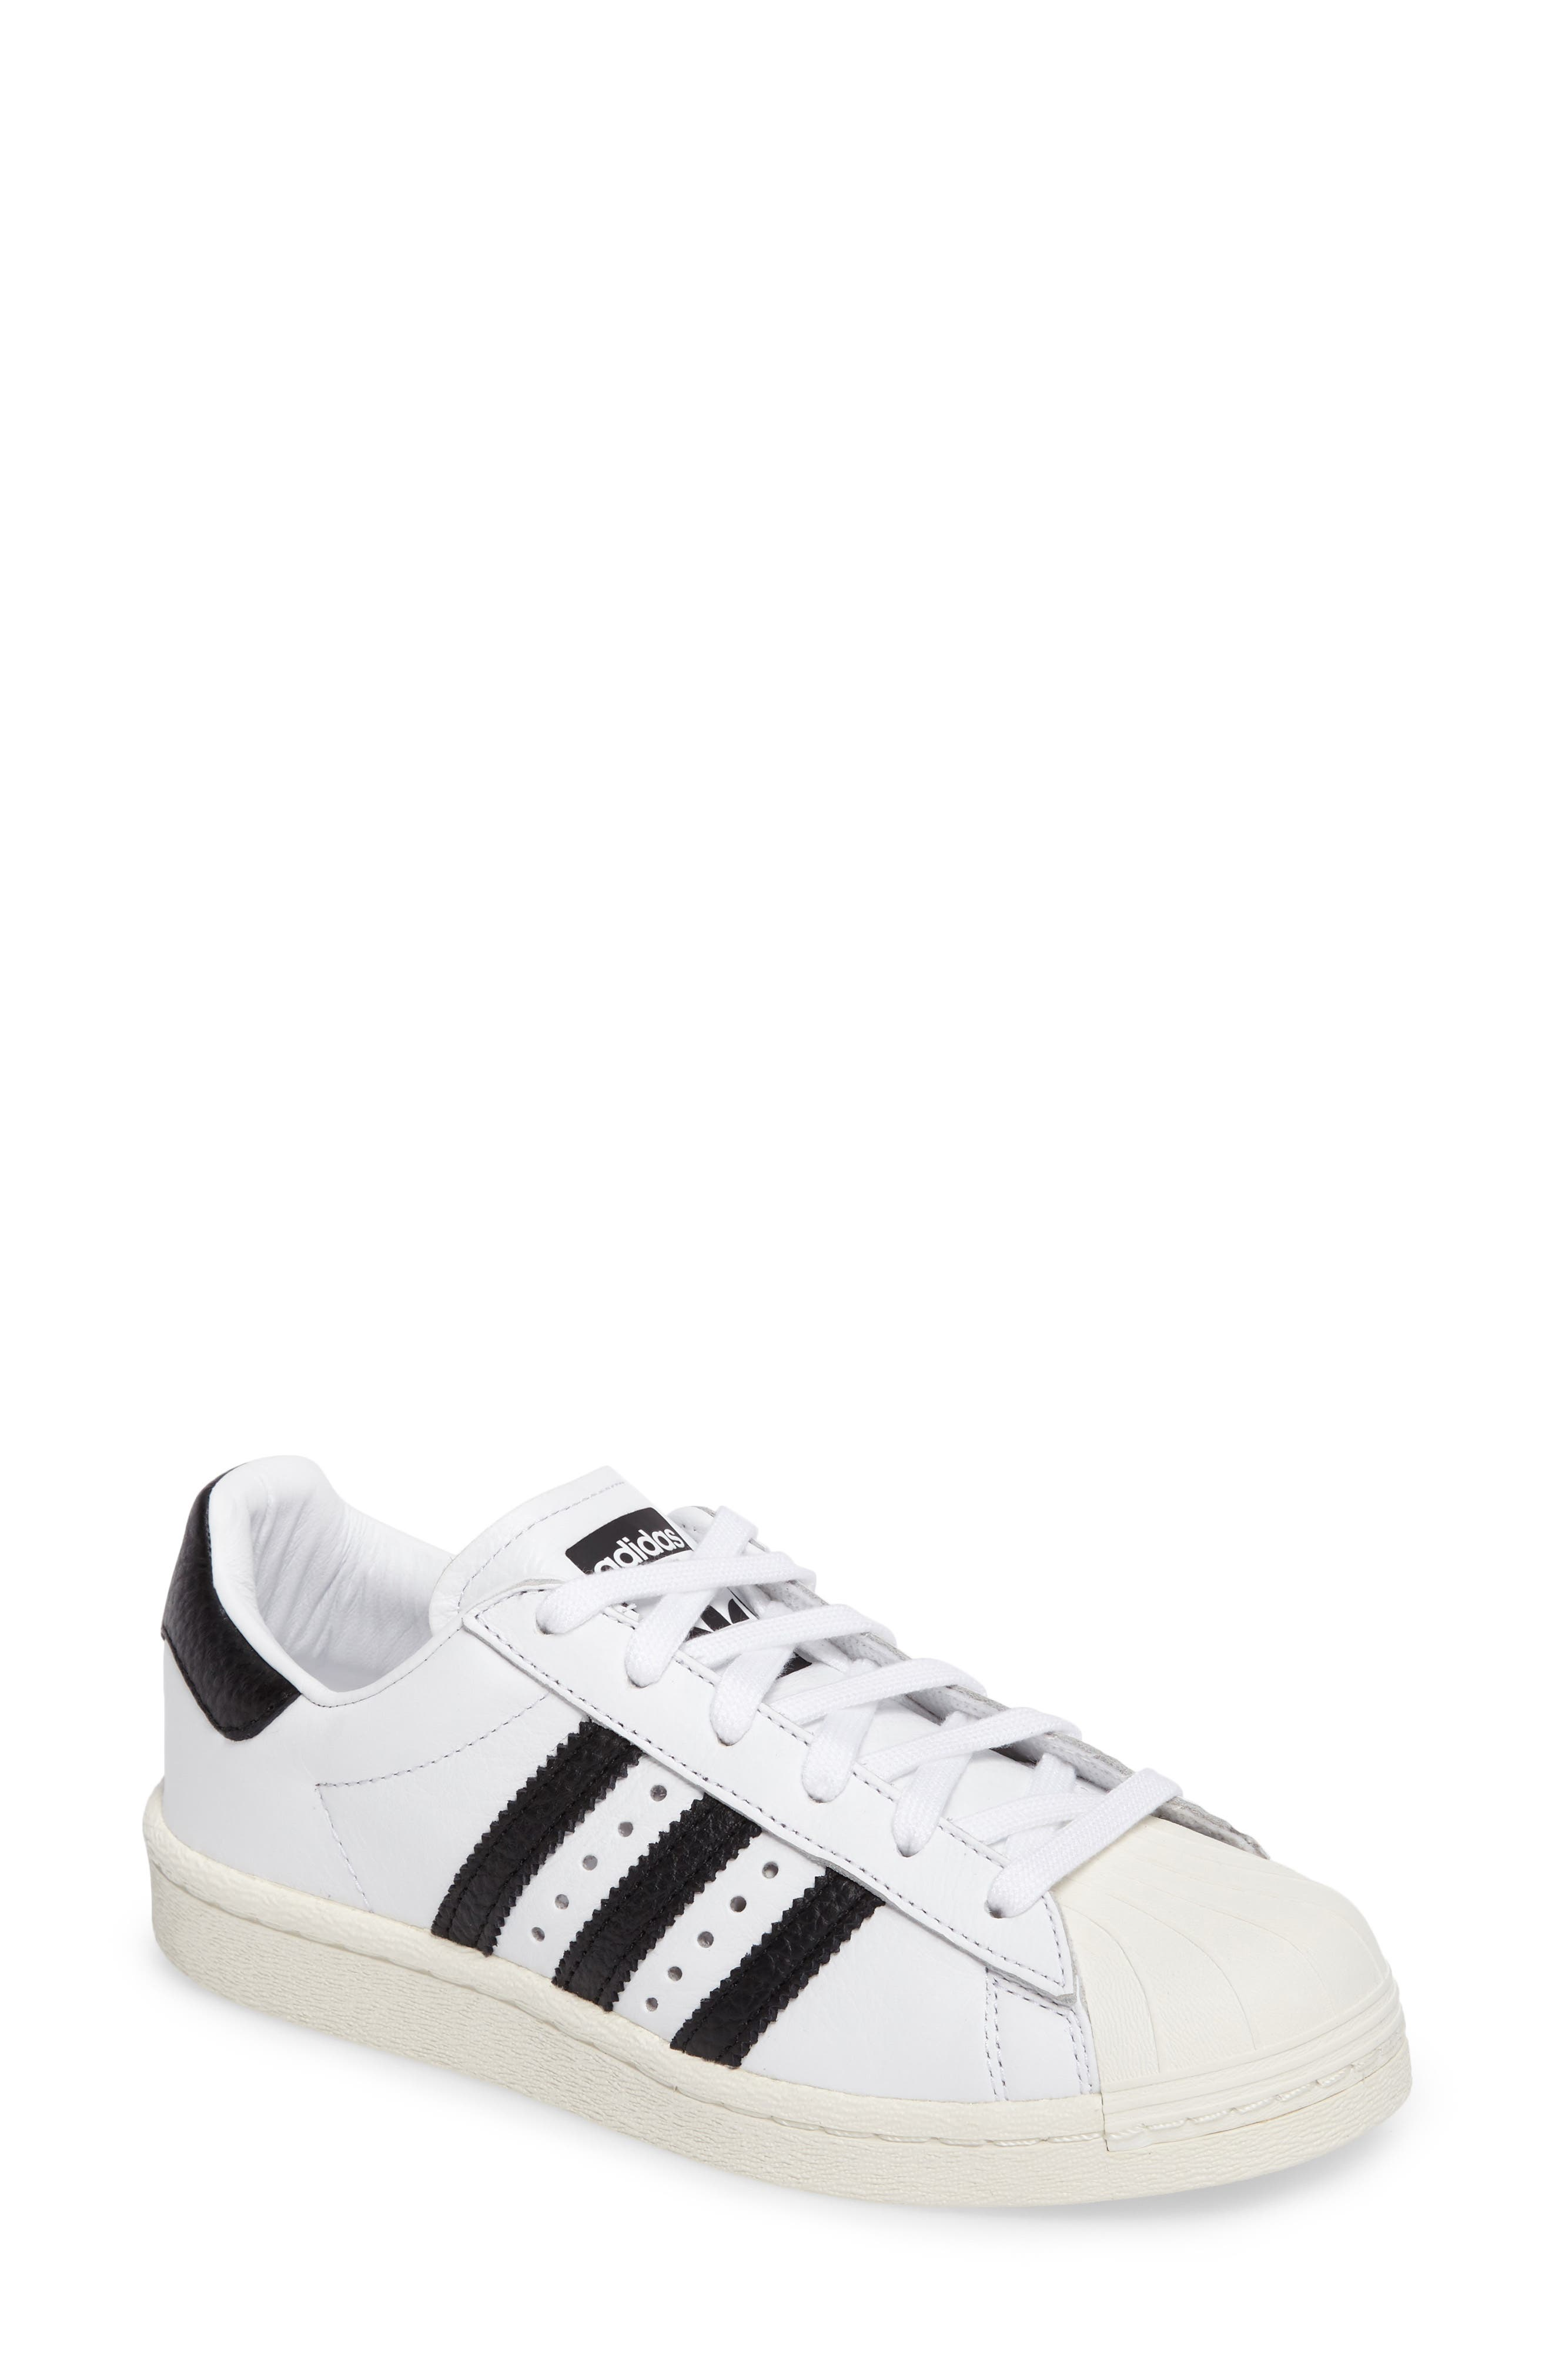 adidas Superstar Boost Sneaker (Women)